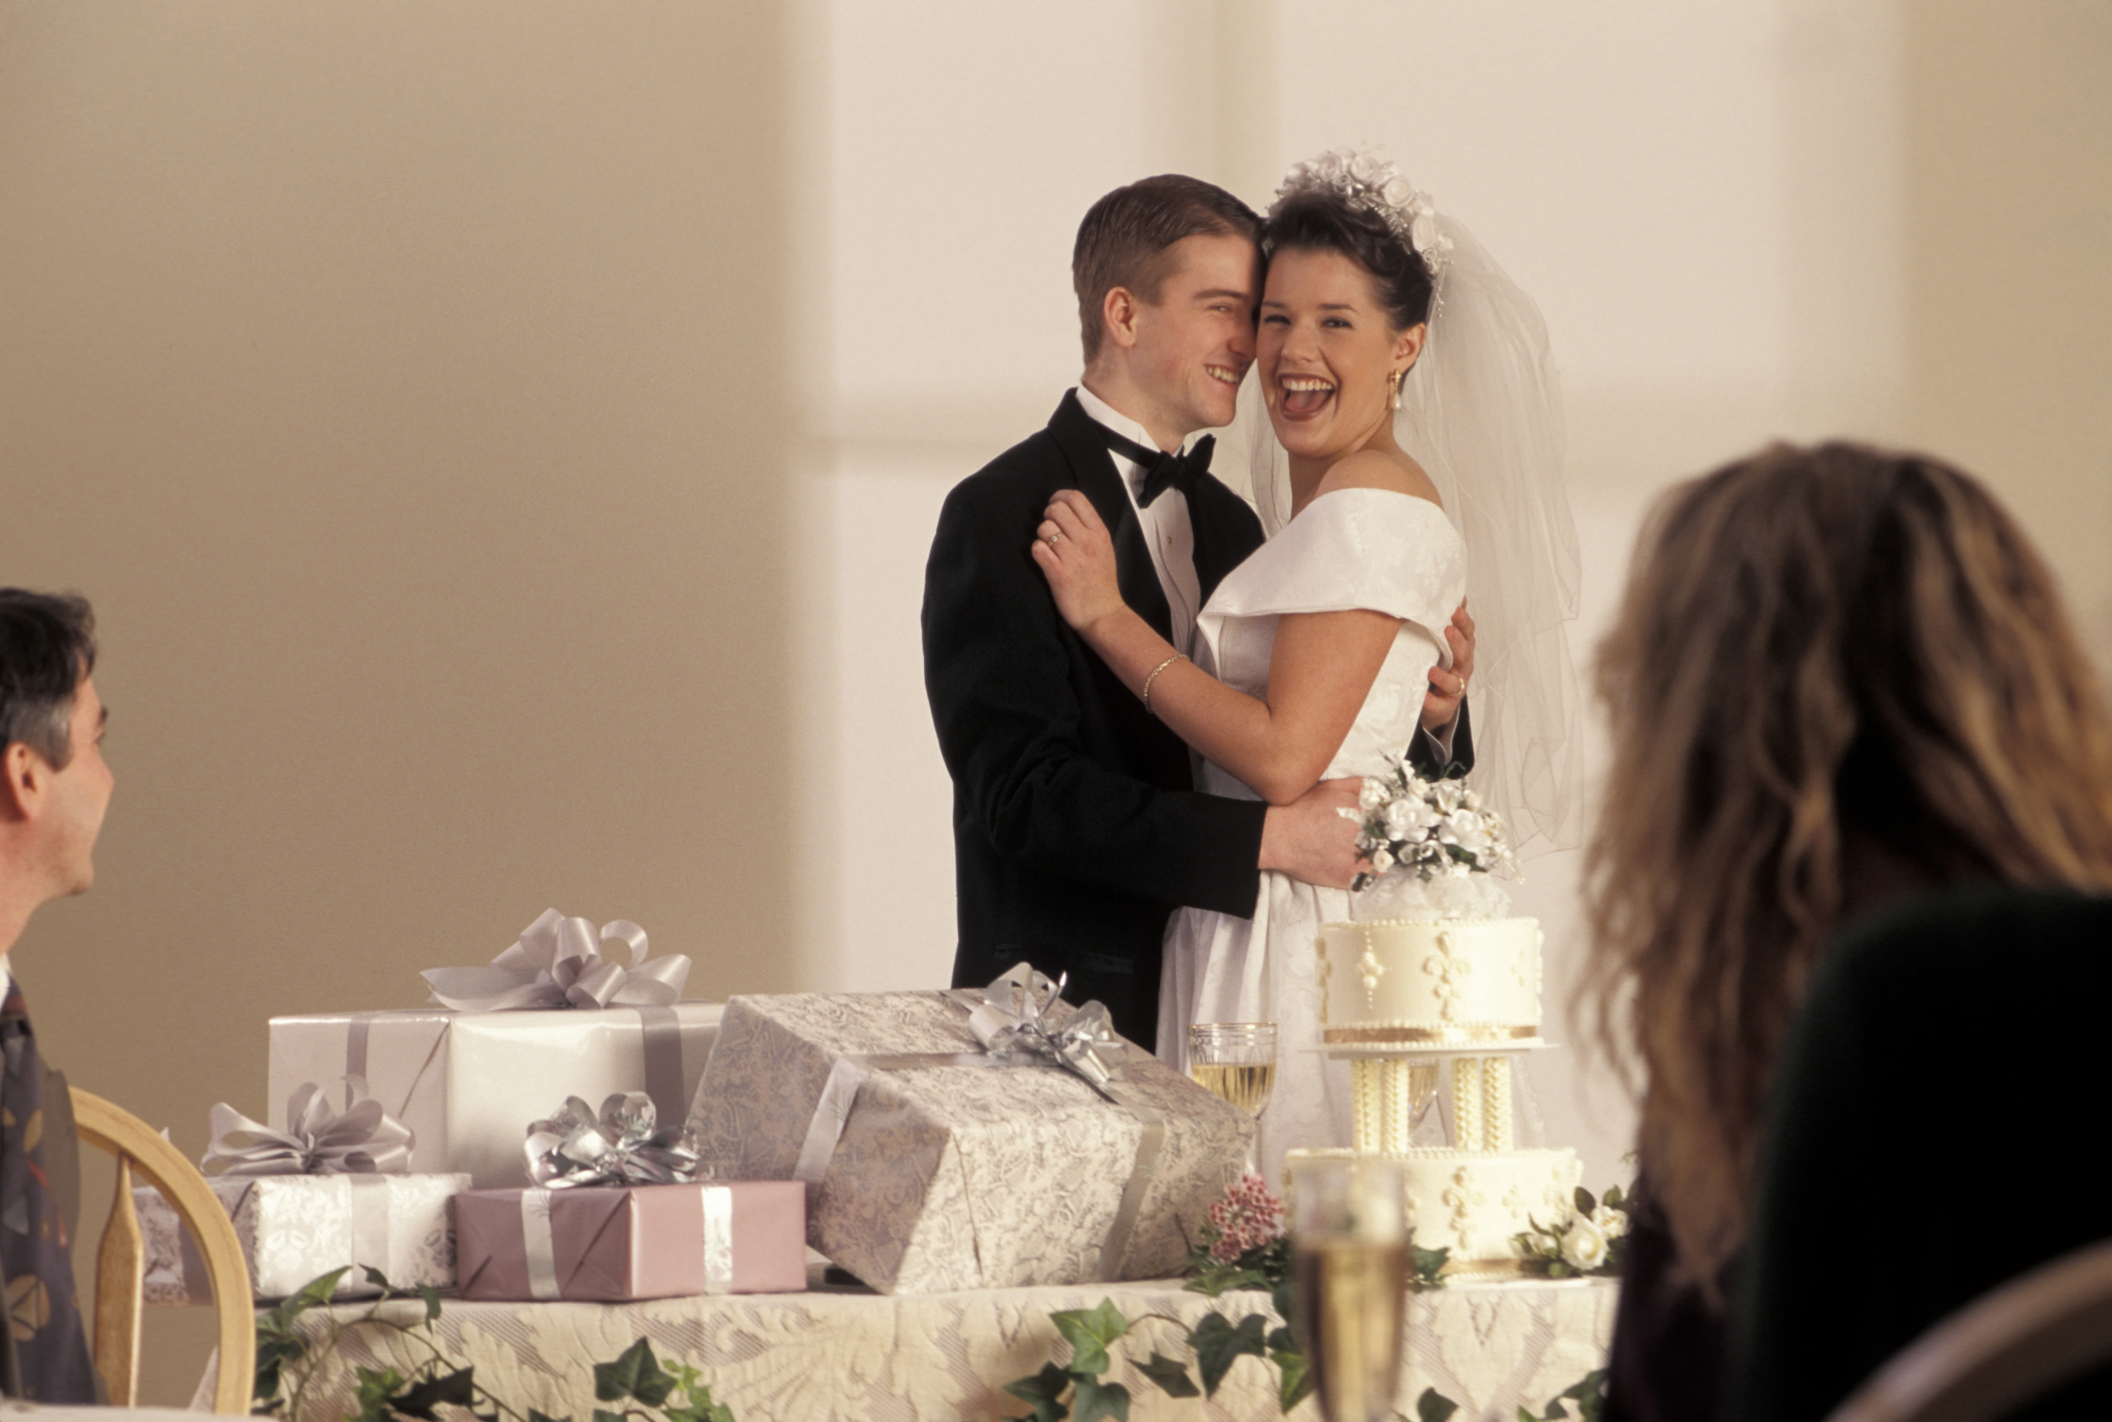 No Gifts Wedding: Wedding Etiquette For No Gifts In Lieu Of Gifts